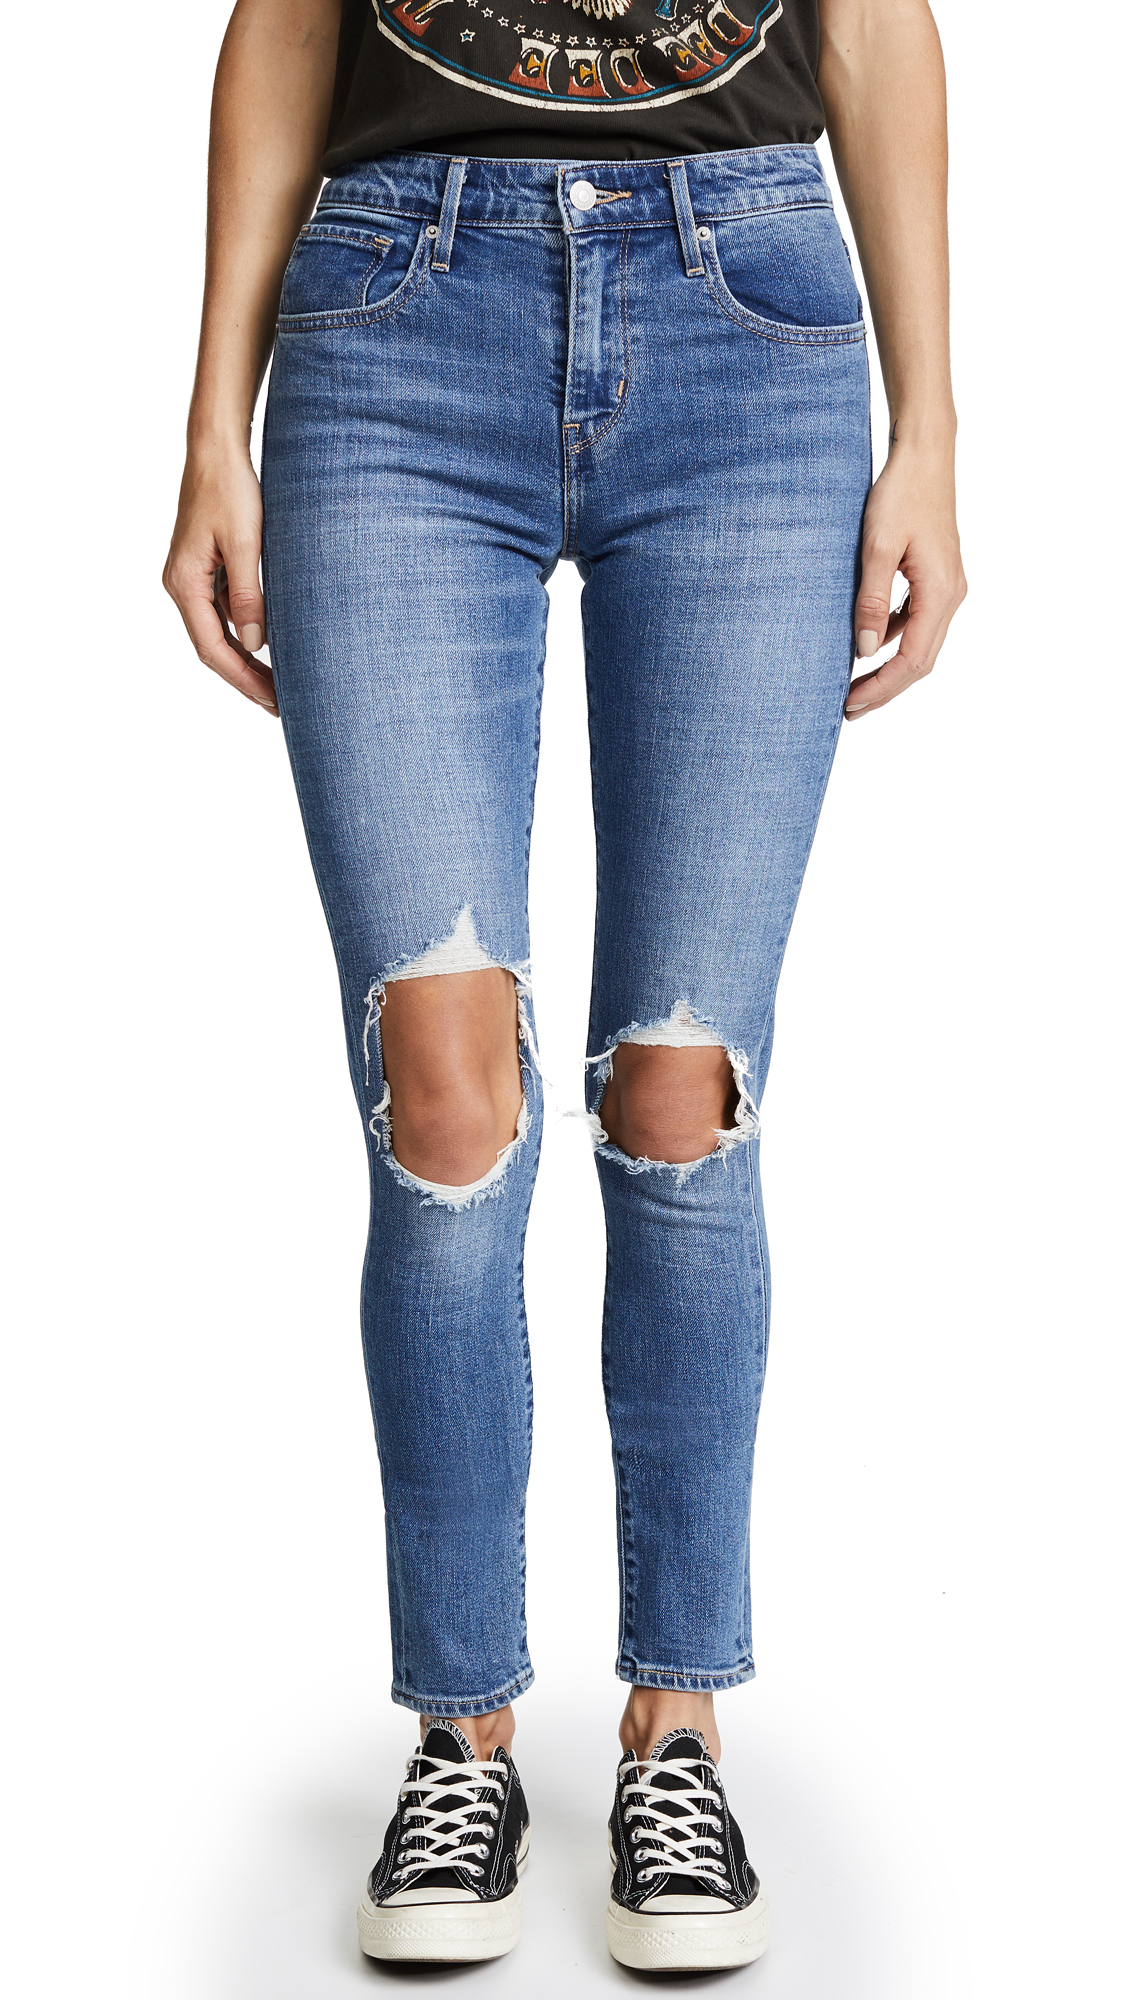 956f2ea7f89f Levi s 721 High Rise Distressed Skinny Jeans